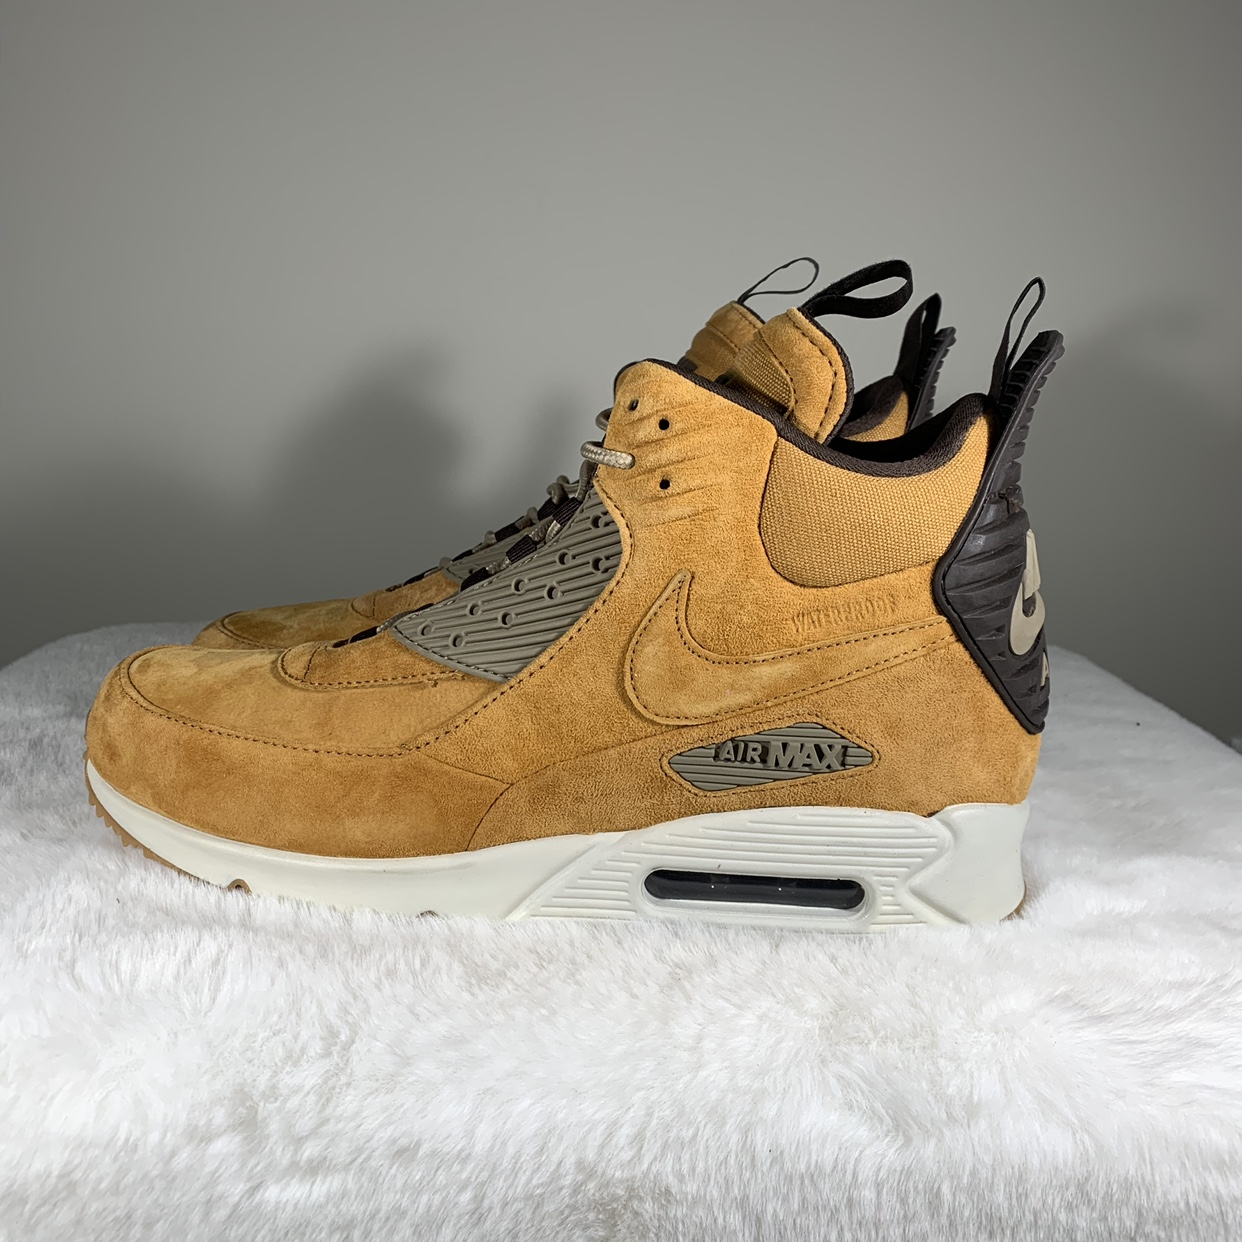 Nike Air Max 90 Sneakerboot Winter Waterproof Wheat 684714